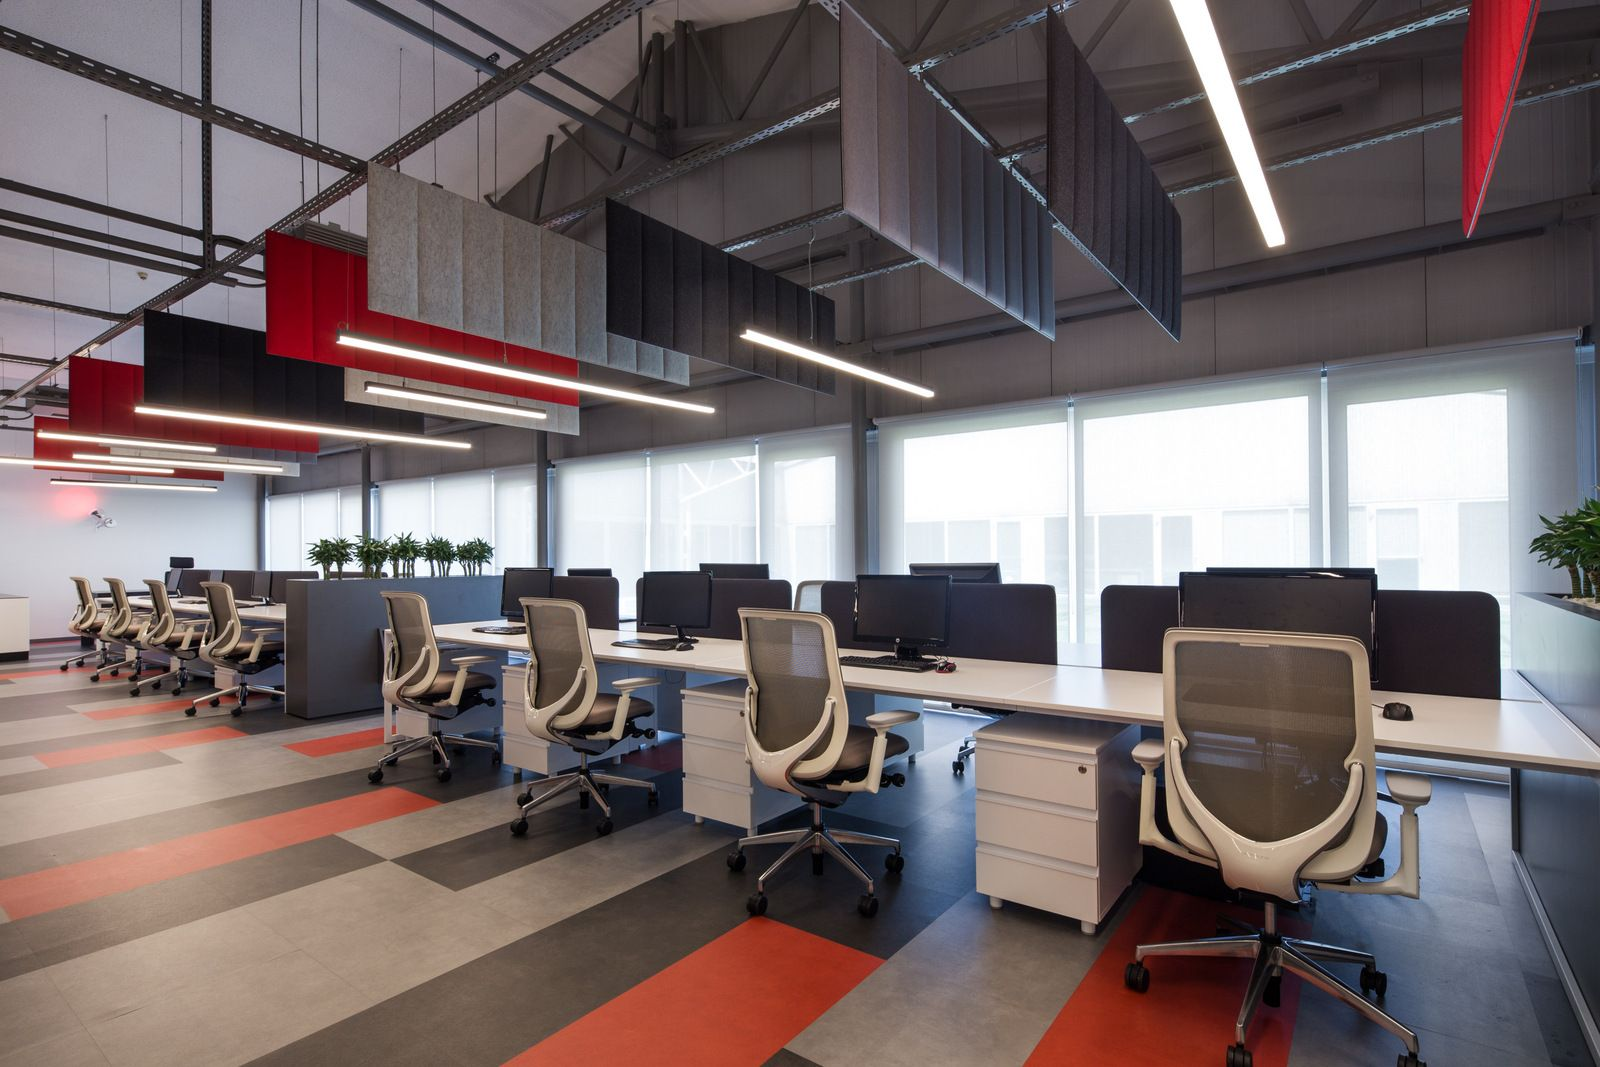 sound deadening panels hanging from the ceiling | Mintek ...